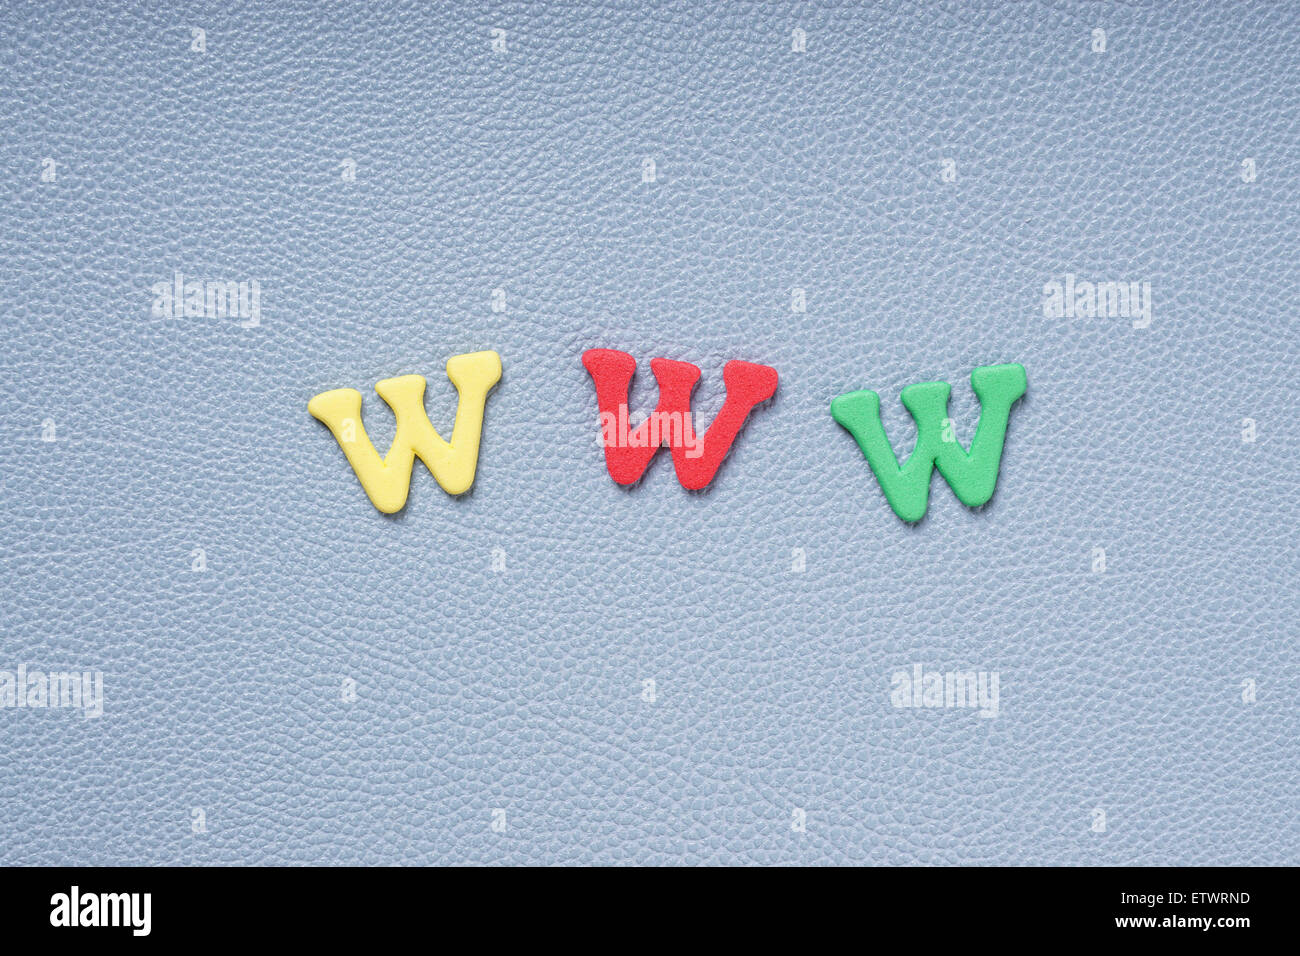 www in colorful letters - Stock Image